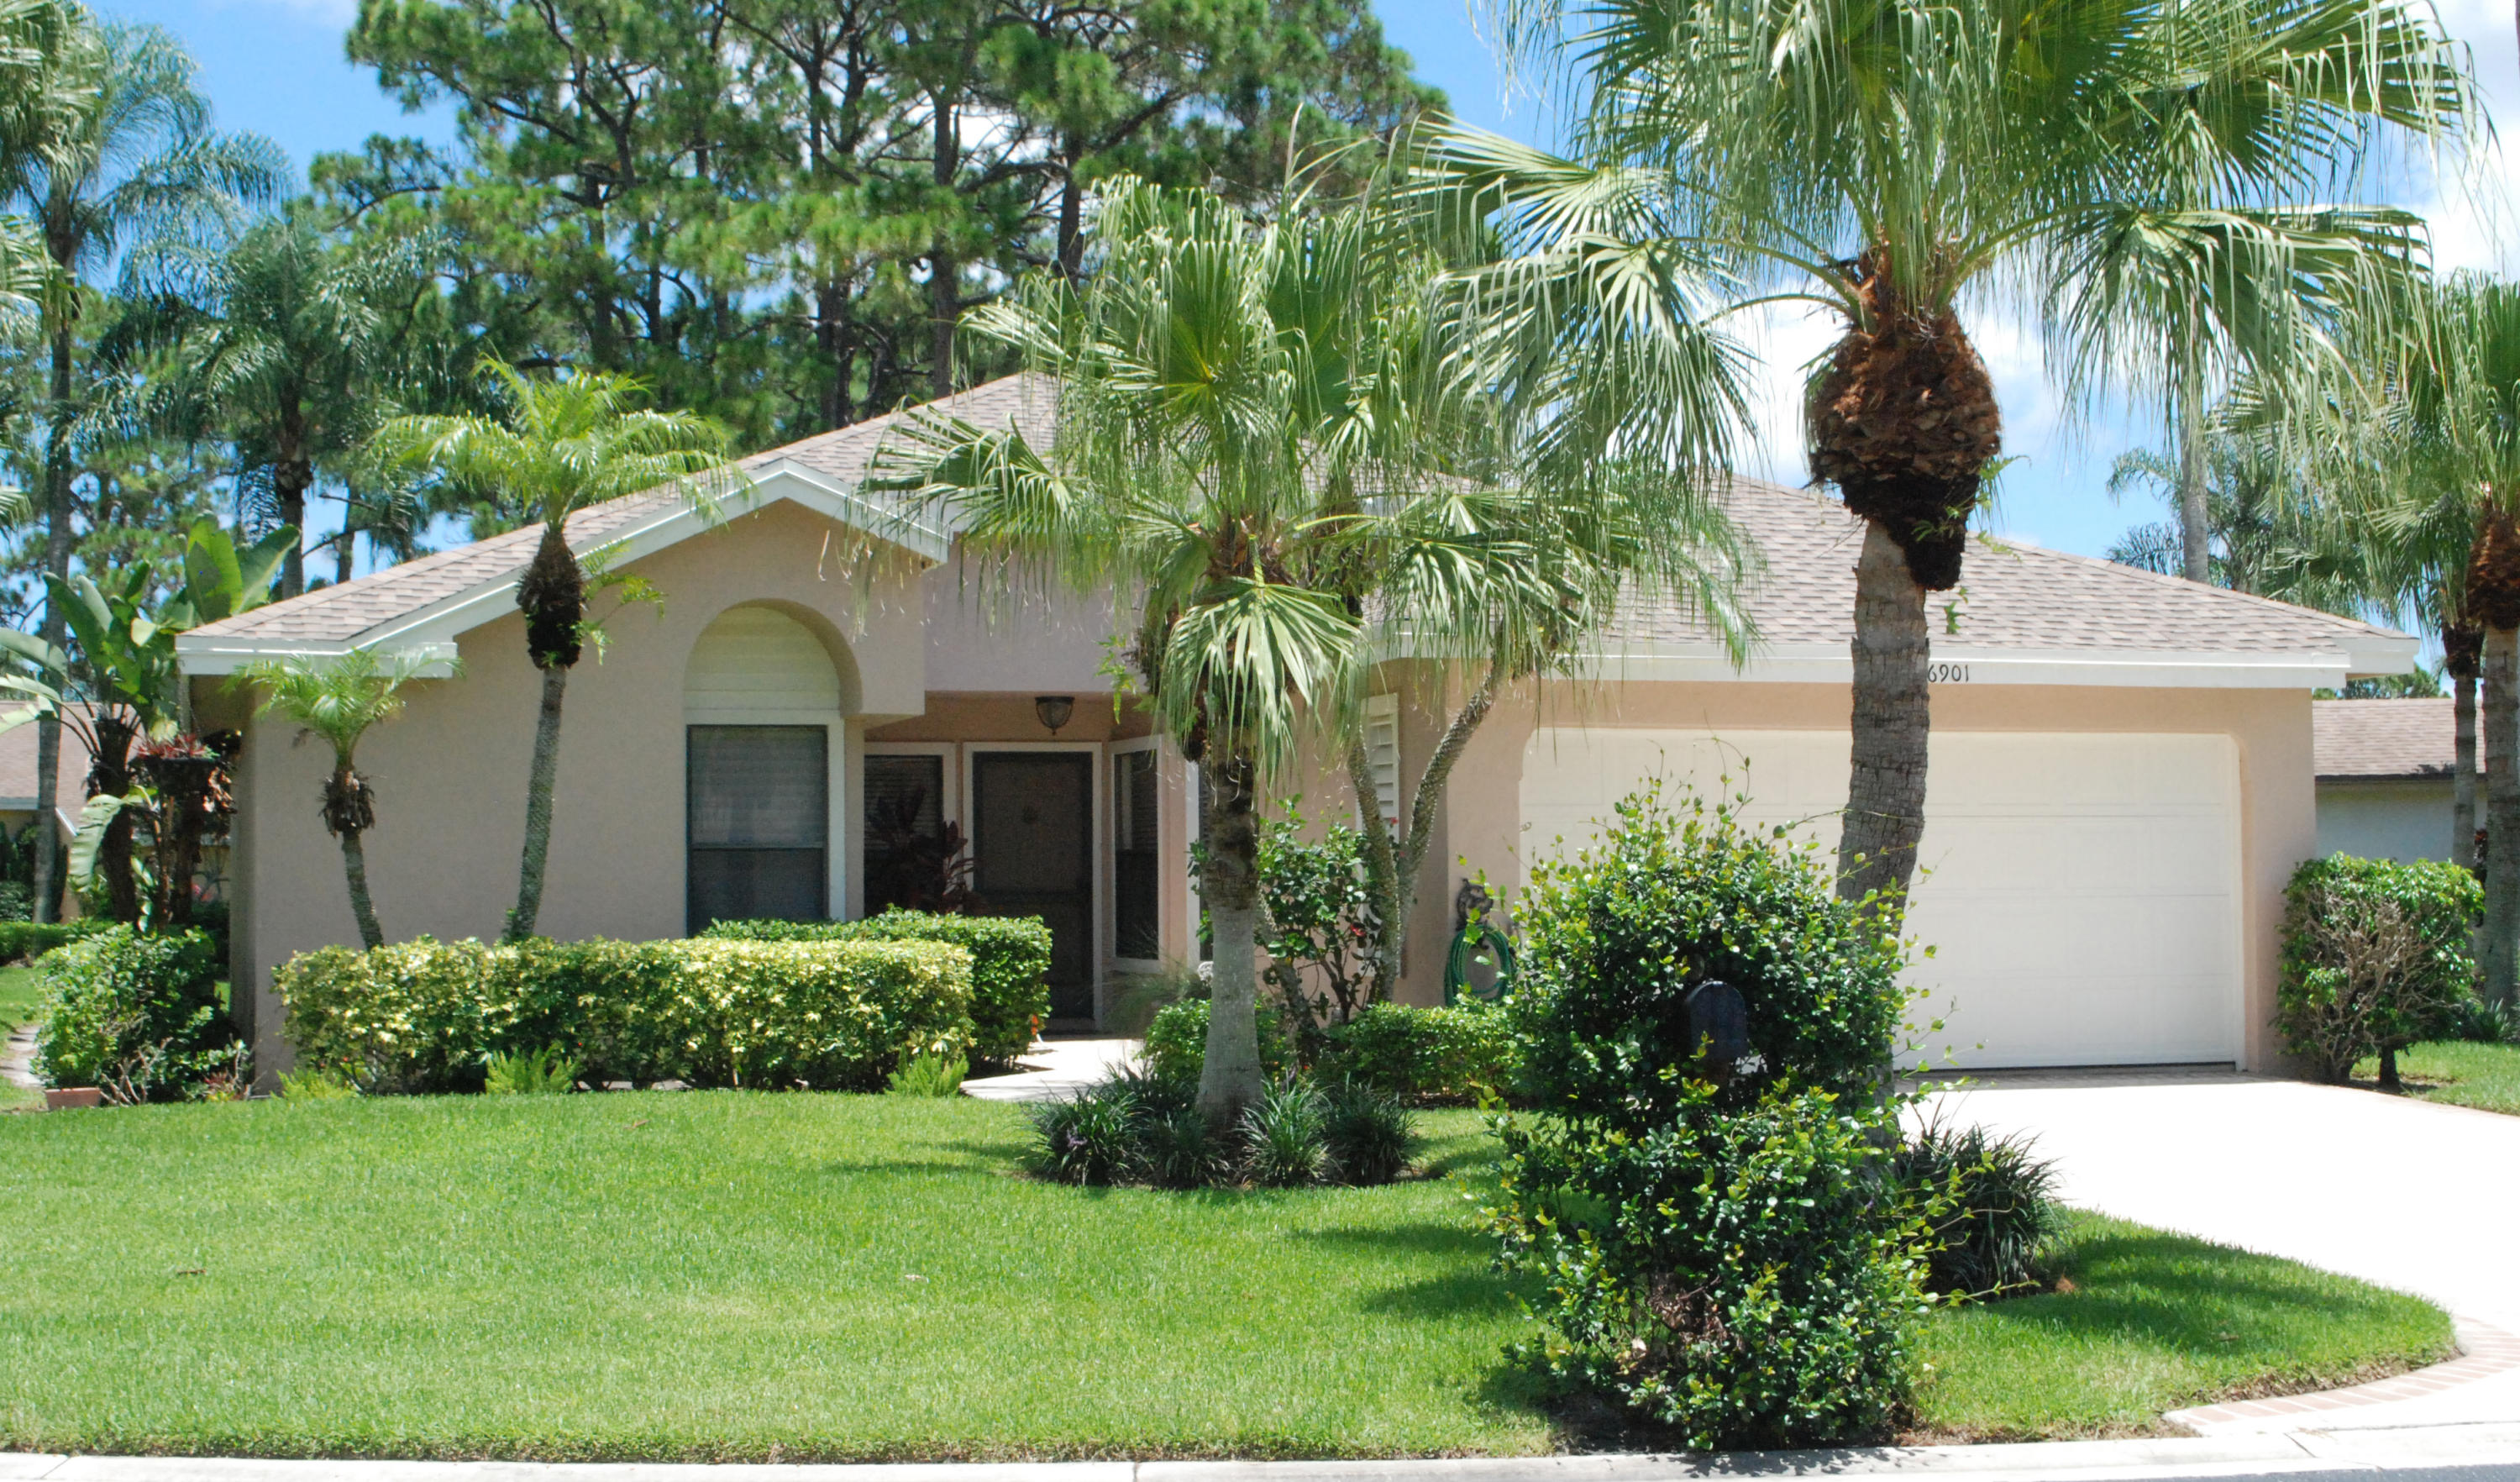 6901 Touchstone Circle, West Palm Beach, Florida 33418, 2 Bedrooms Bedrooms, ,2 BathroomsBathrooms,F,Single family,Touchstone,RX-10477031